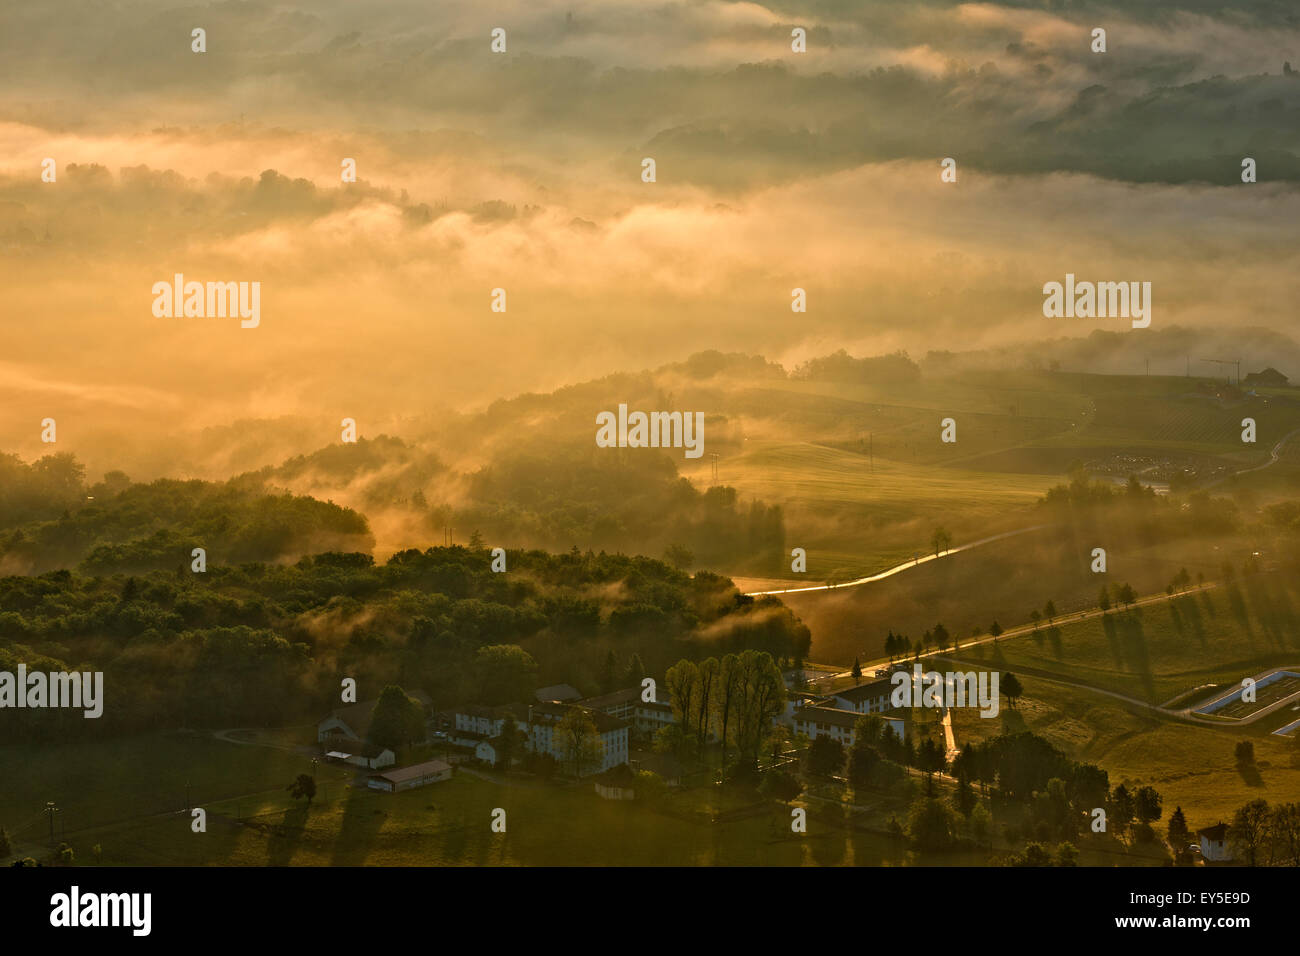 Mists of Savoyard countryside at dawn - France after a stormy night - Stock Image